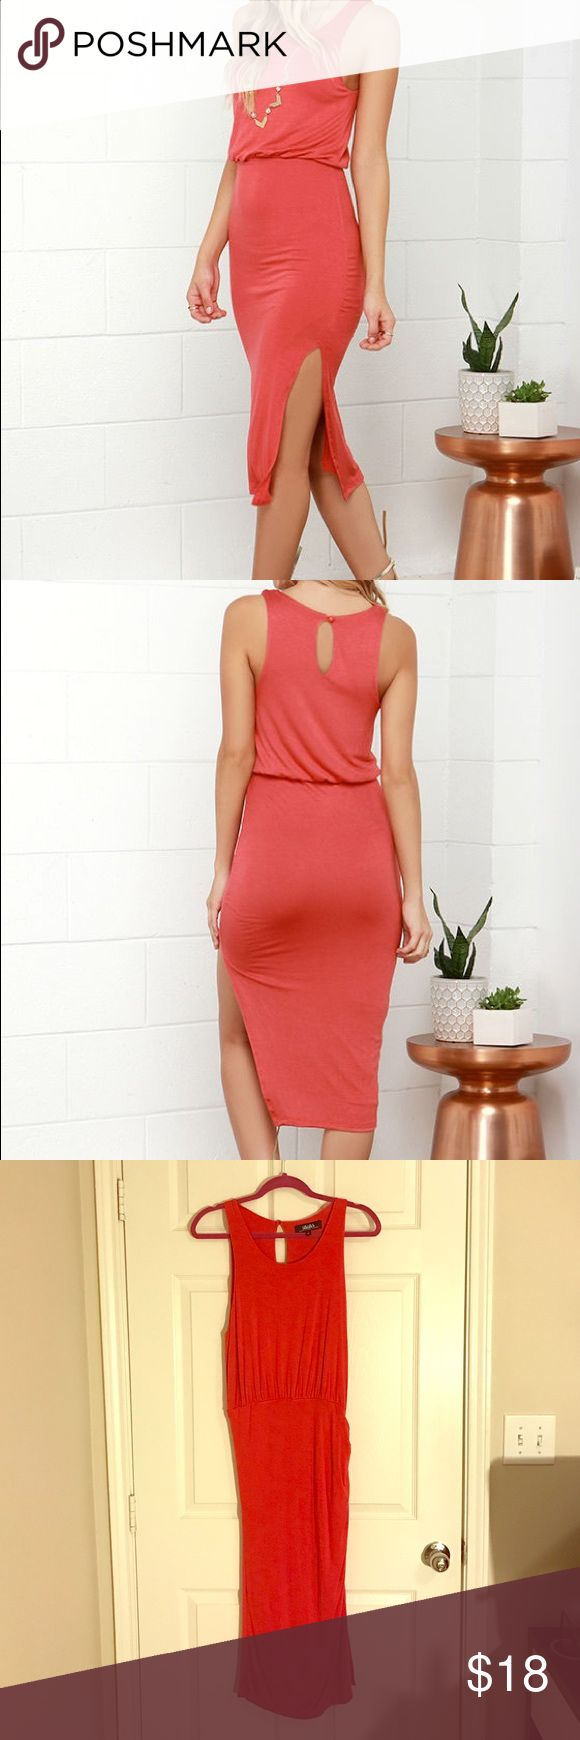 Lulu's side slit midi coral dress Super comfortable and easy to dress up or down w diff shoes and accessories. Side slit and side ruching. Only worn 2 times. Awesome condition. Lulu's Dresses Midi